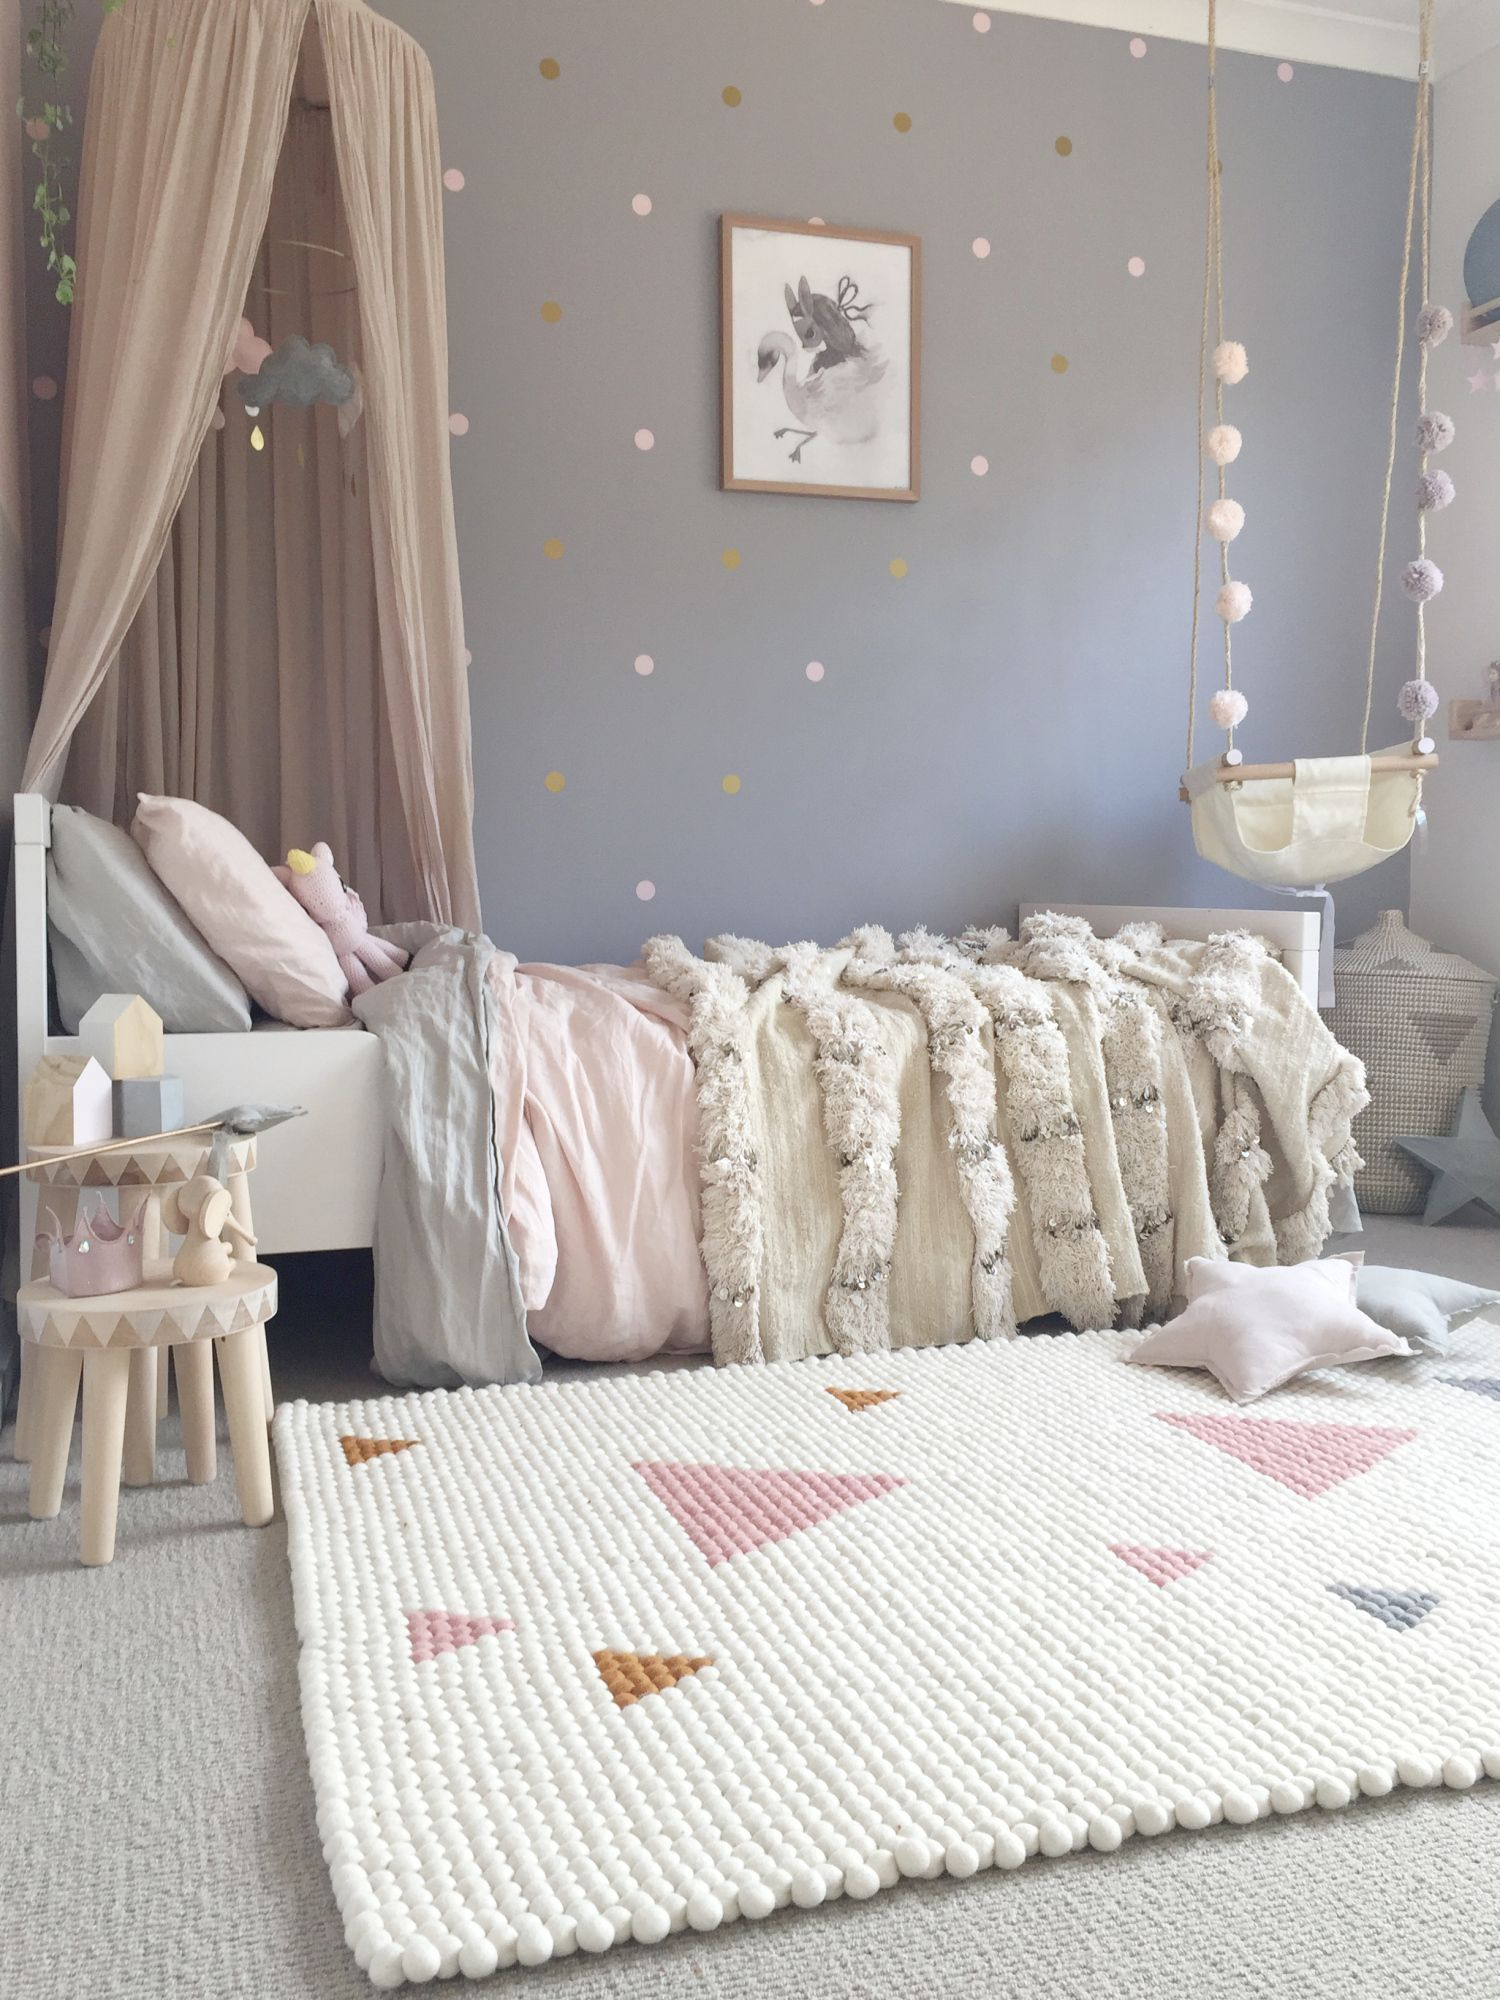 Room Ideas by hustopia When we